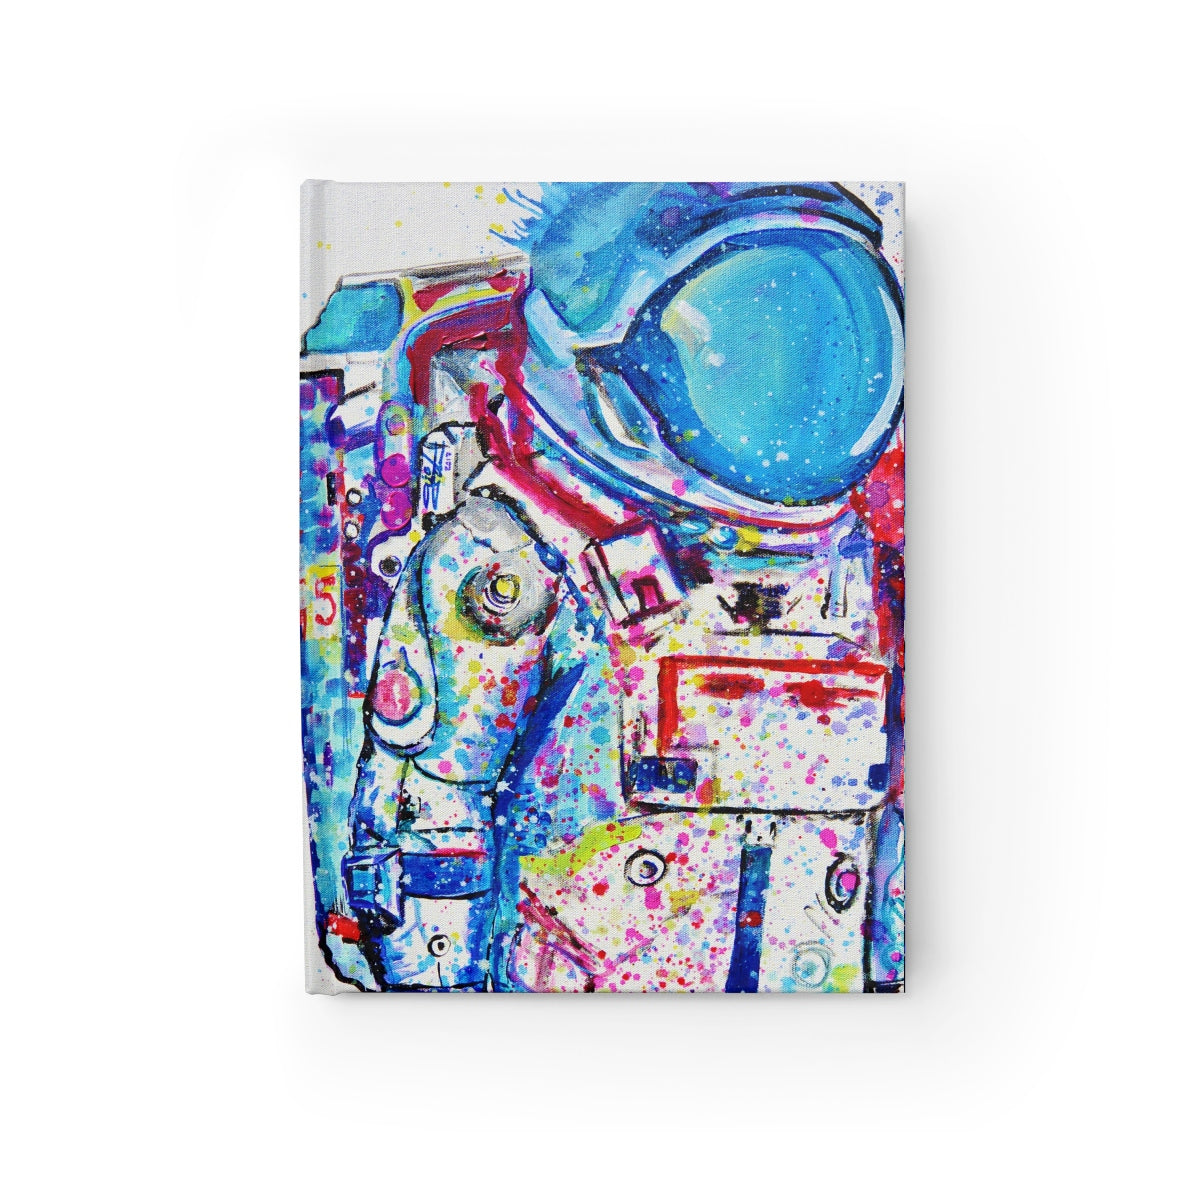 Astronaut 2 Journal - Ruled Line